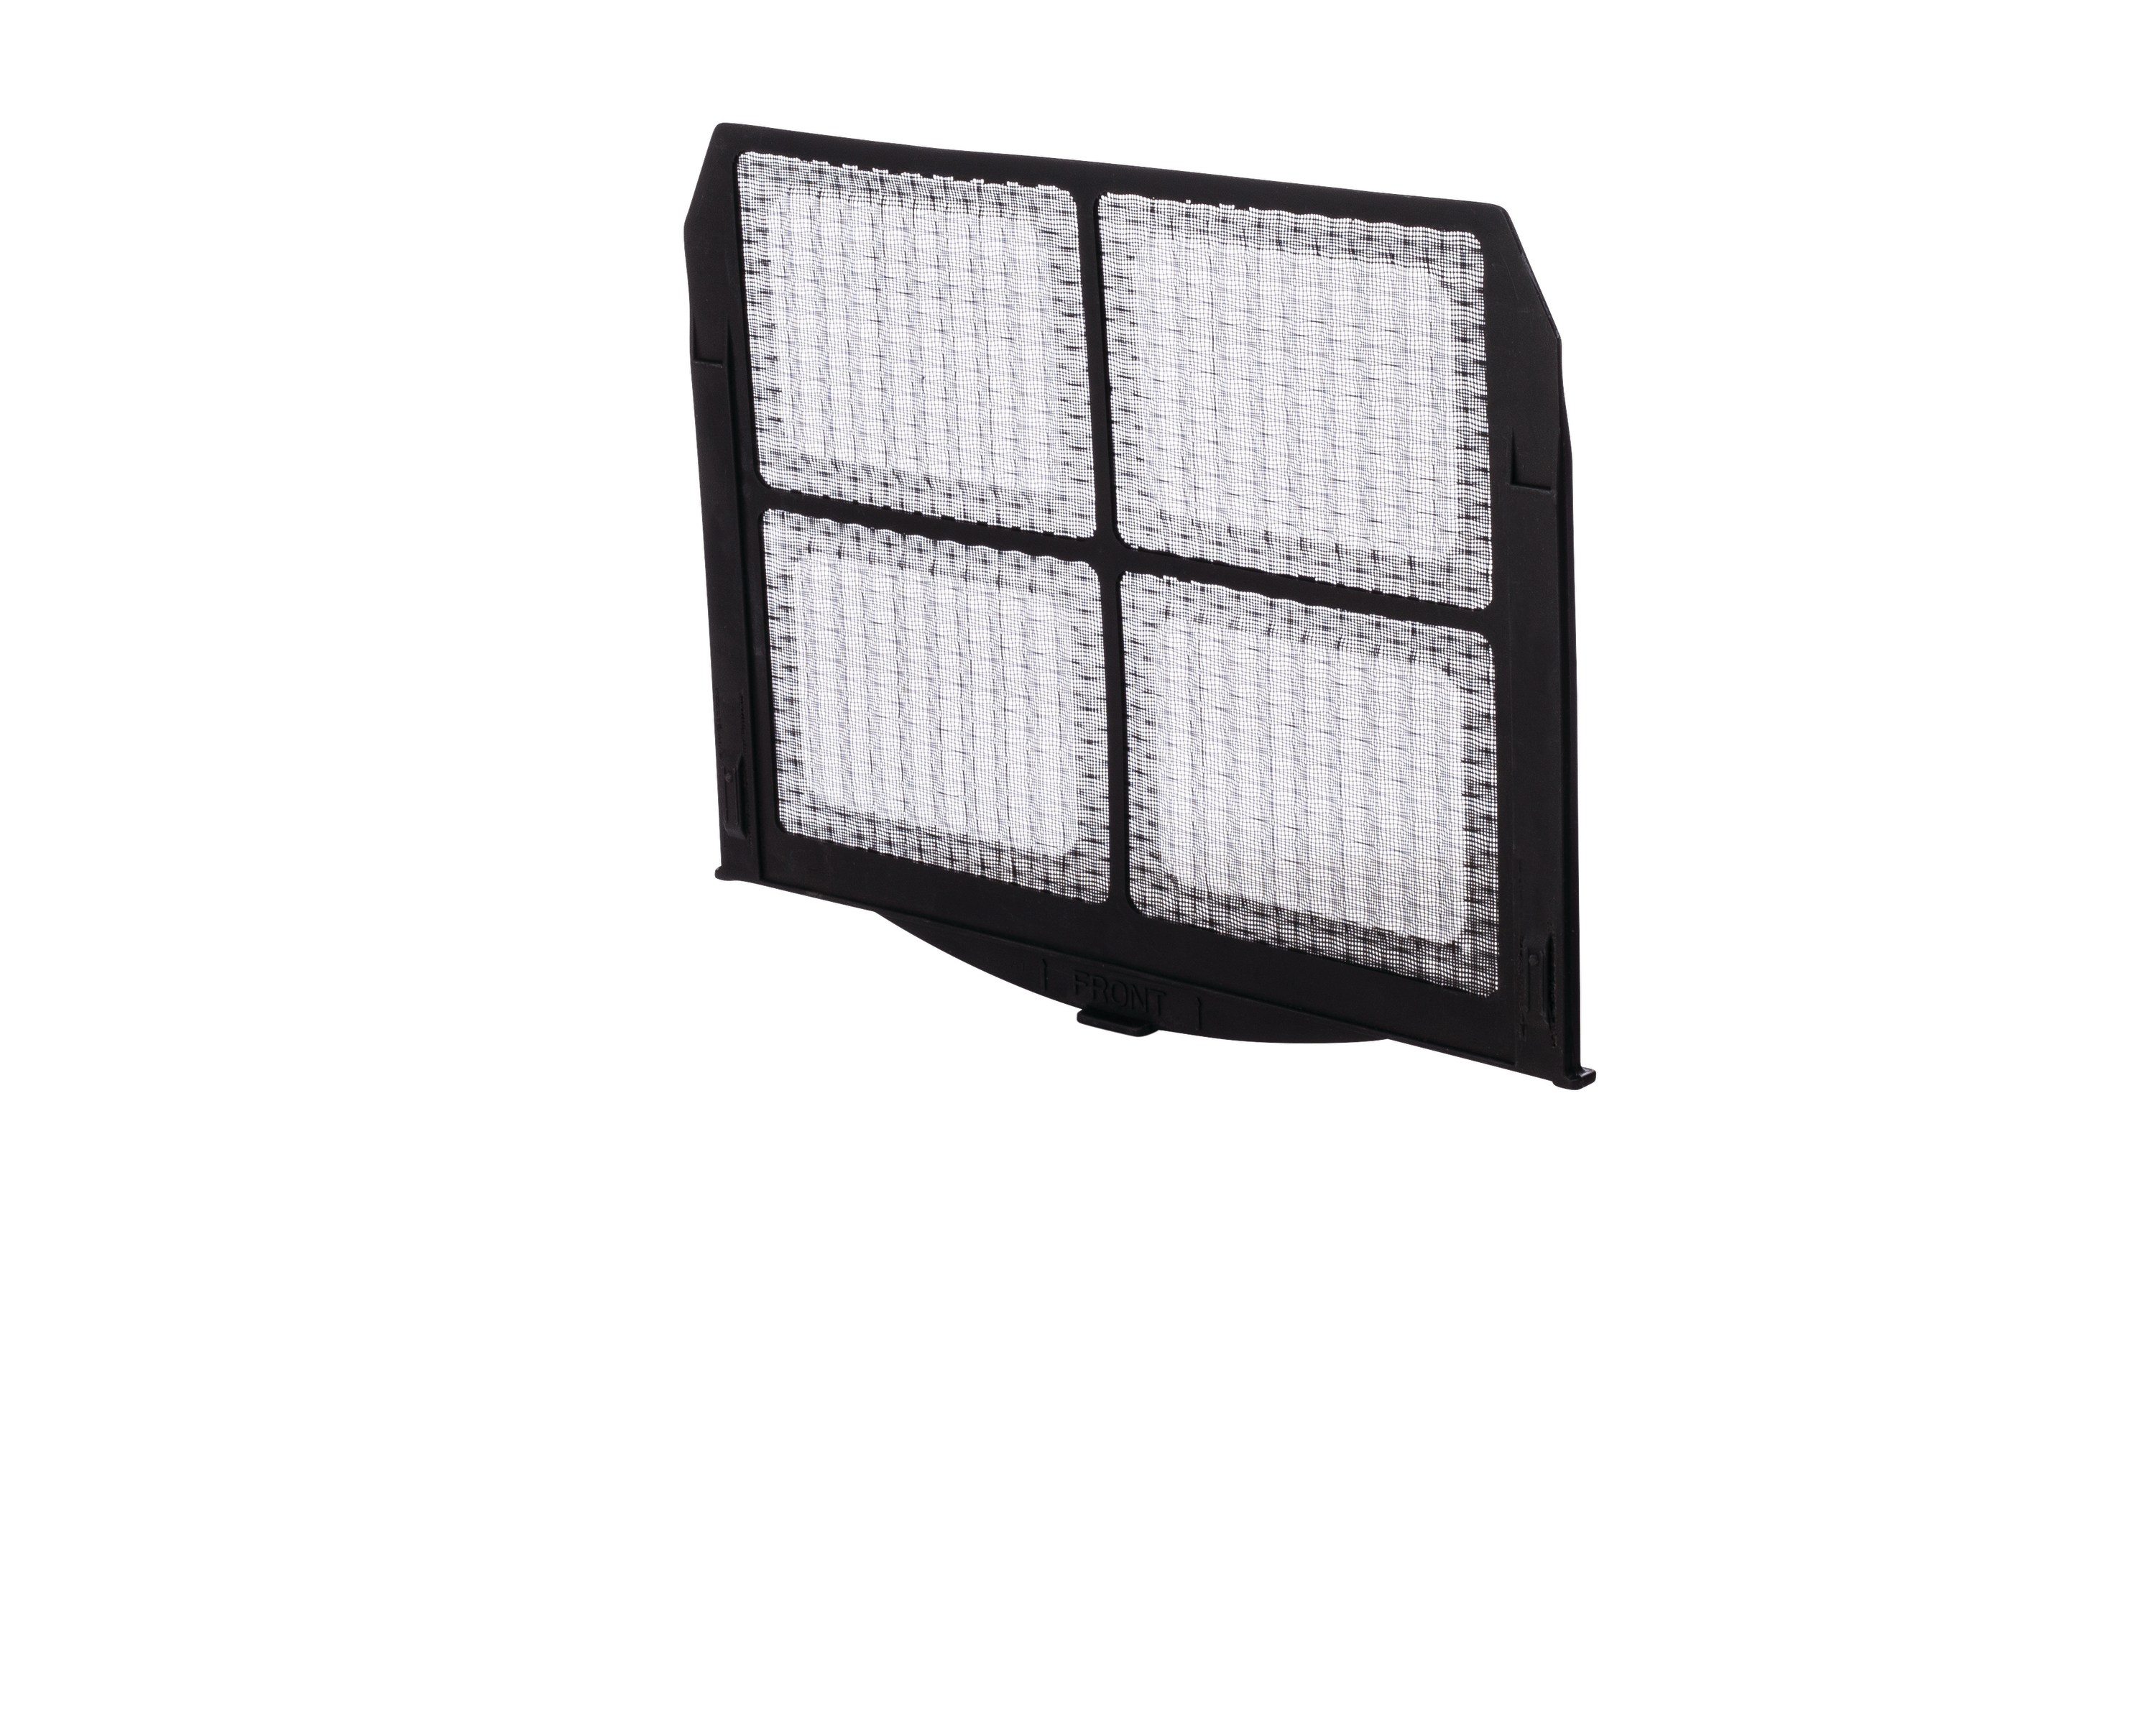 Air Filter for Dehumidifier